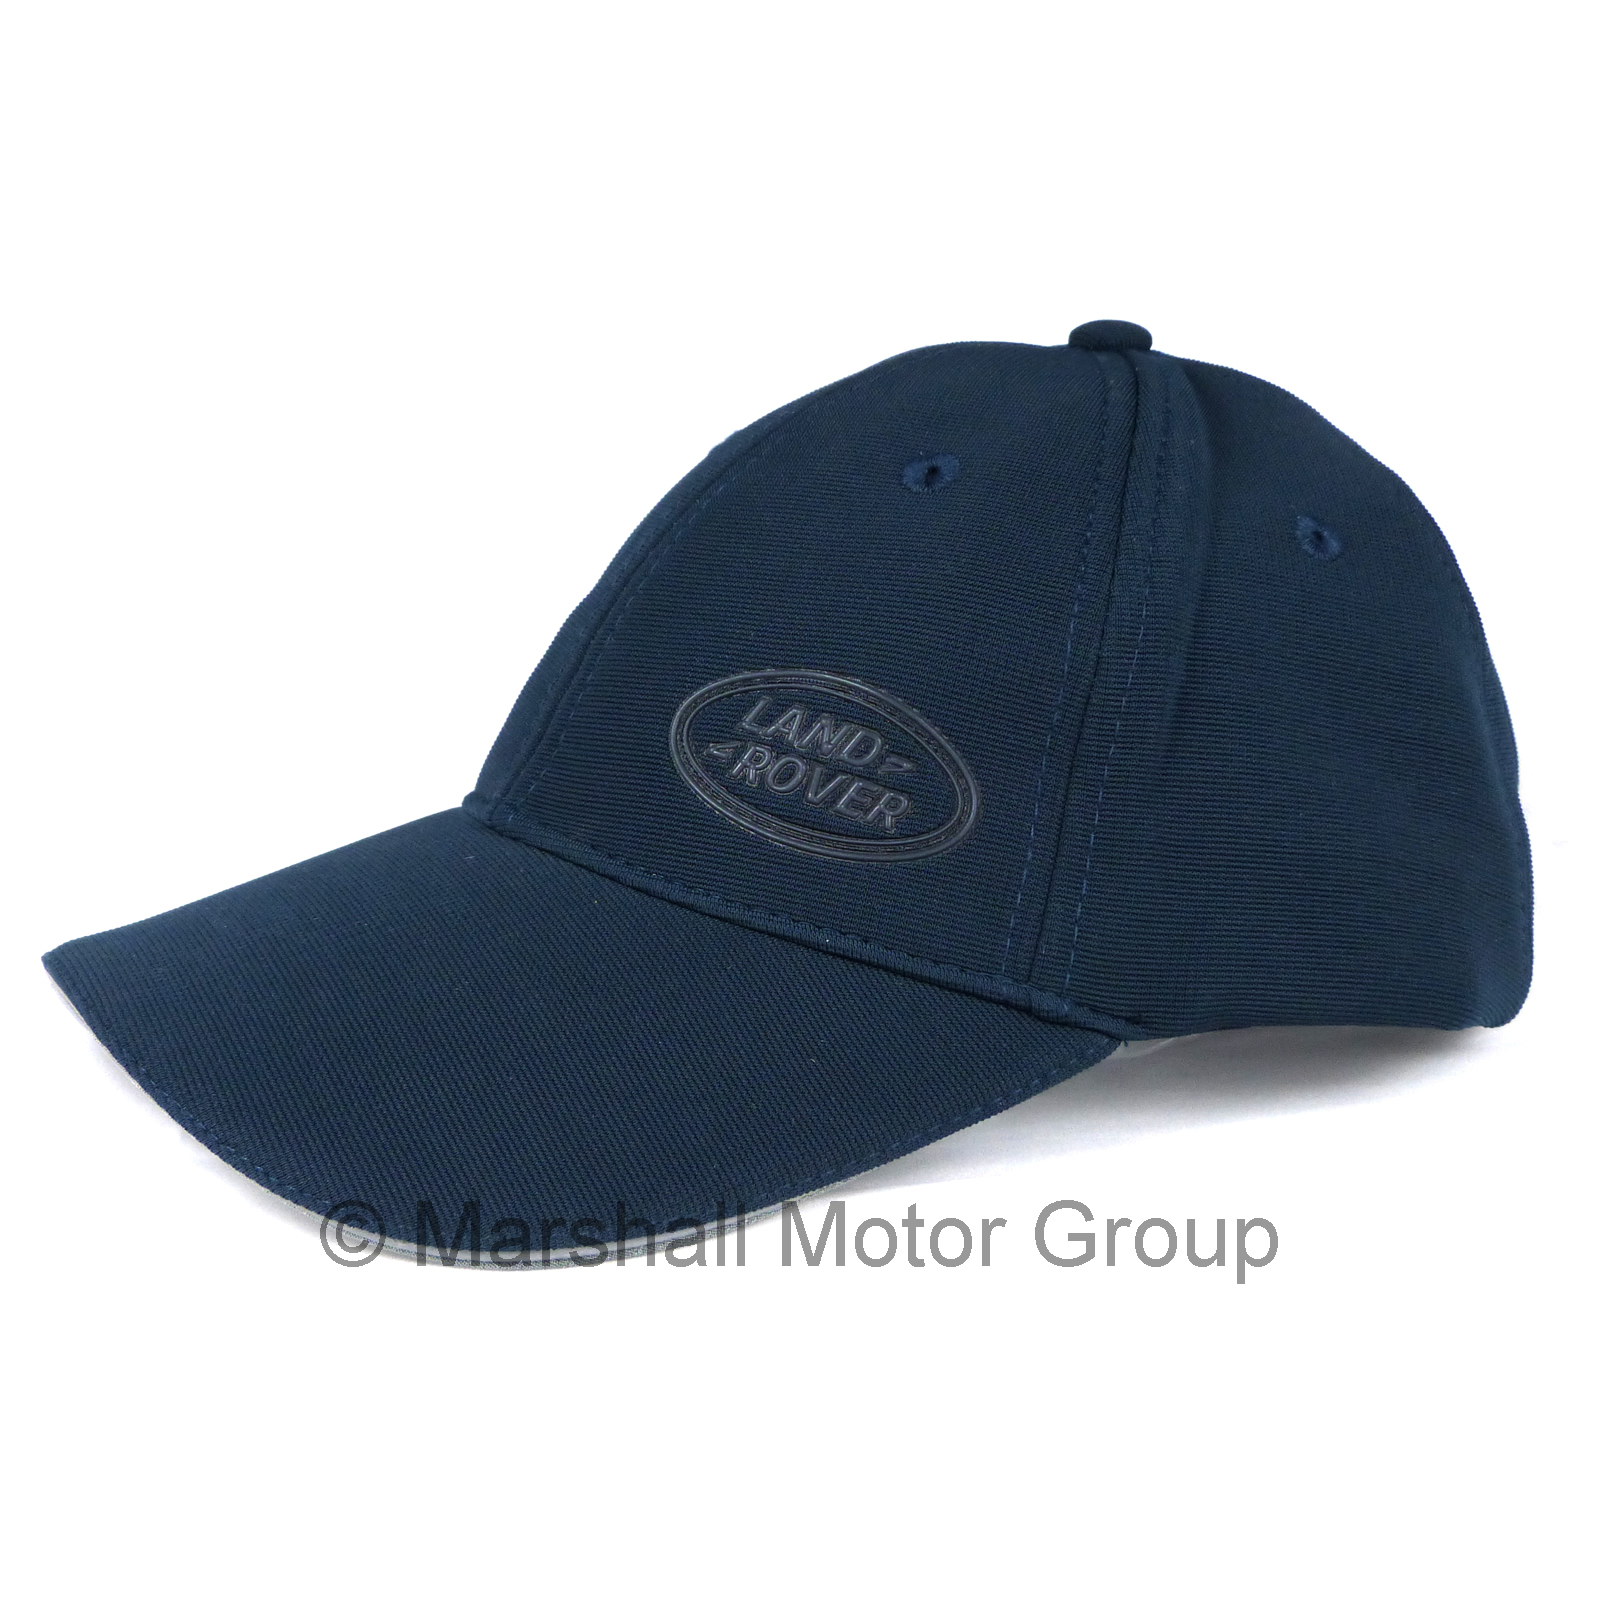 Genuine Land Rover Baseball Cap In Navy